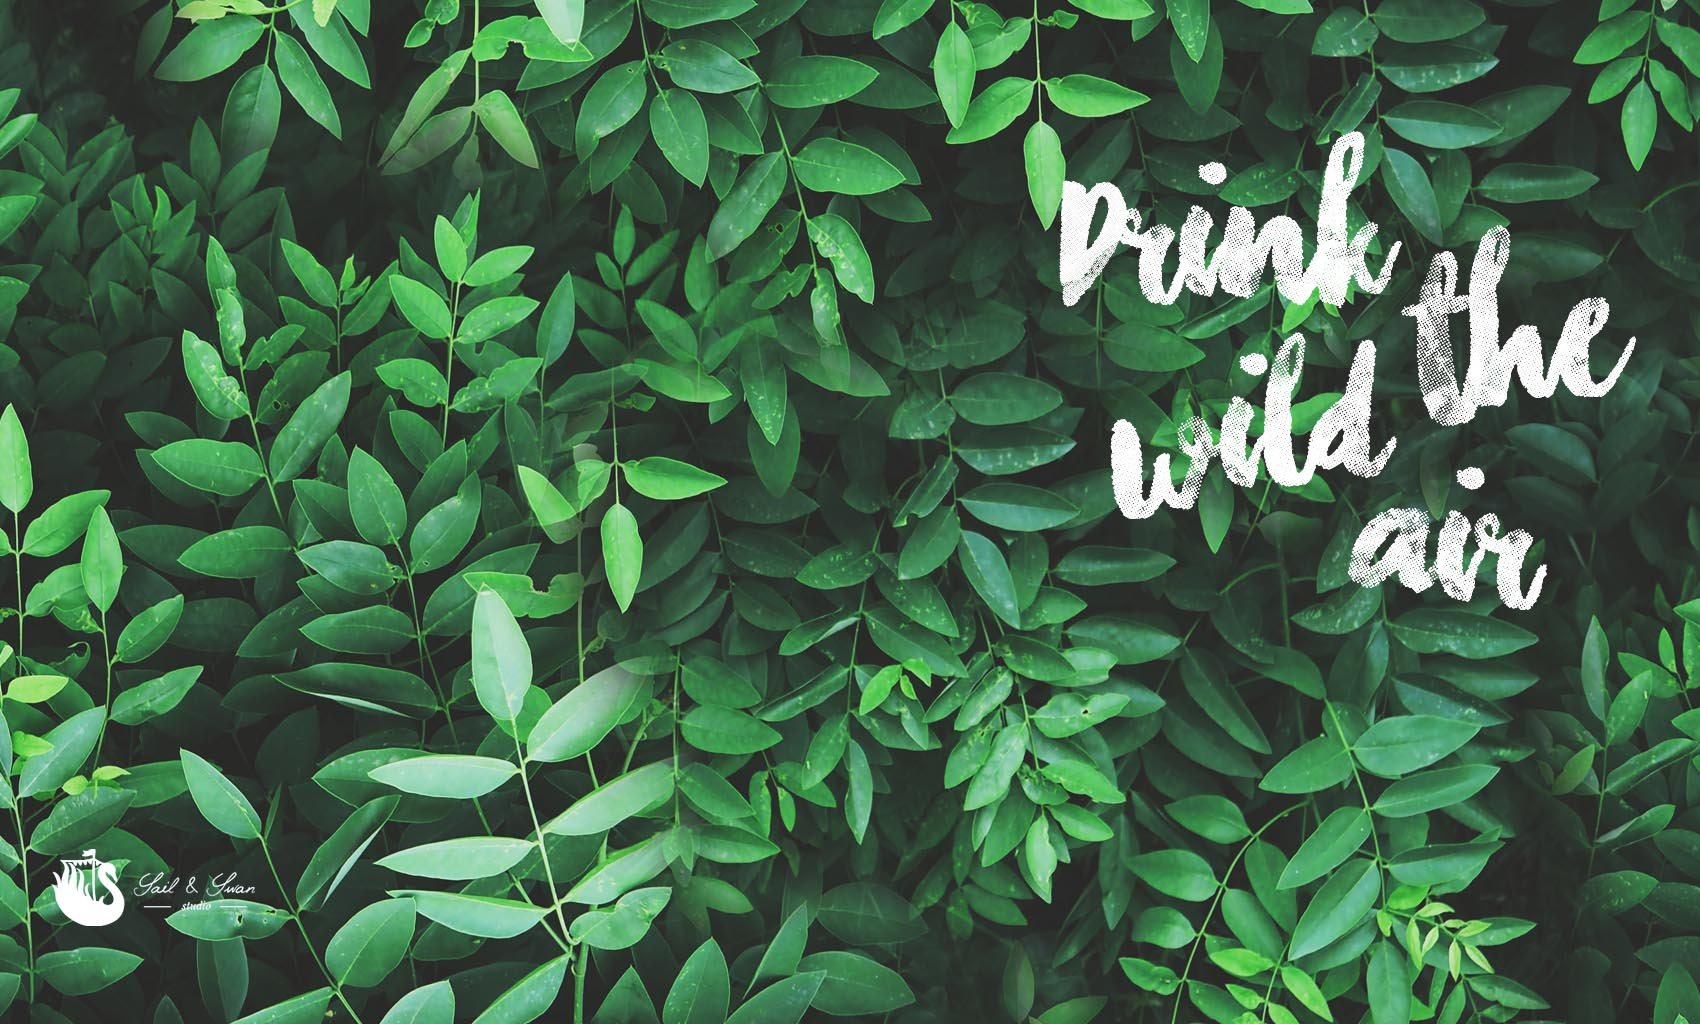 tropical desktop background drink the wild air free wallpaper green jungle leaves inspirational quote sail and swan